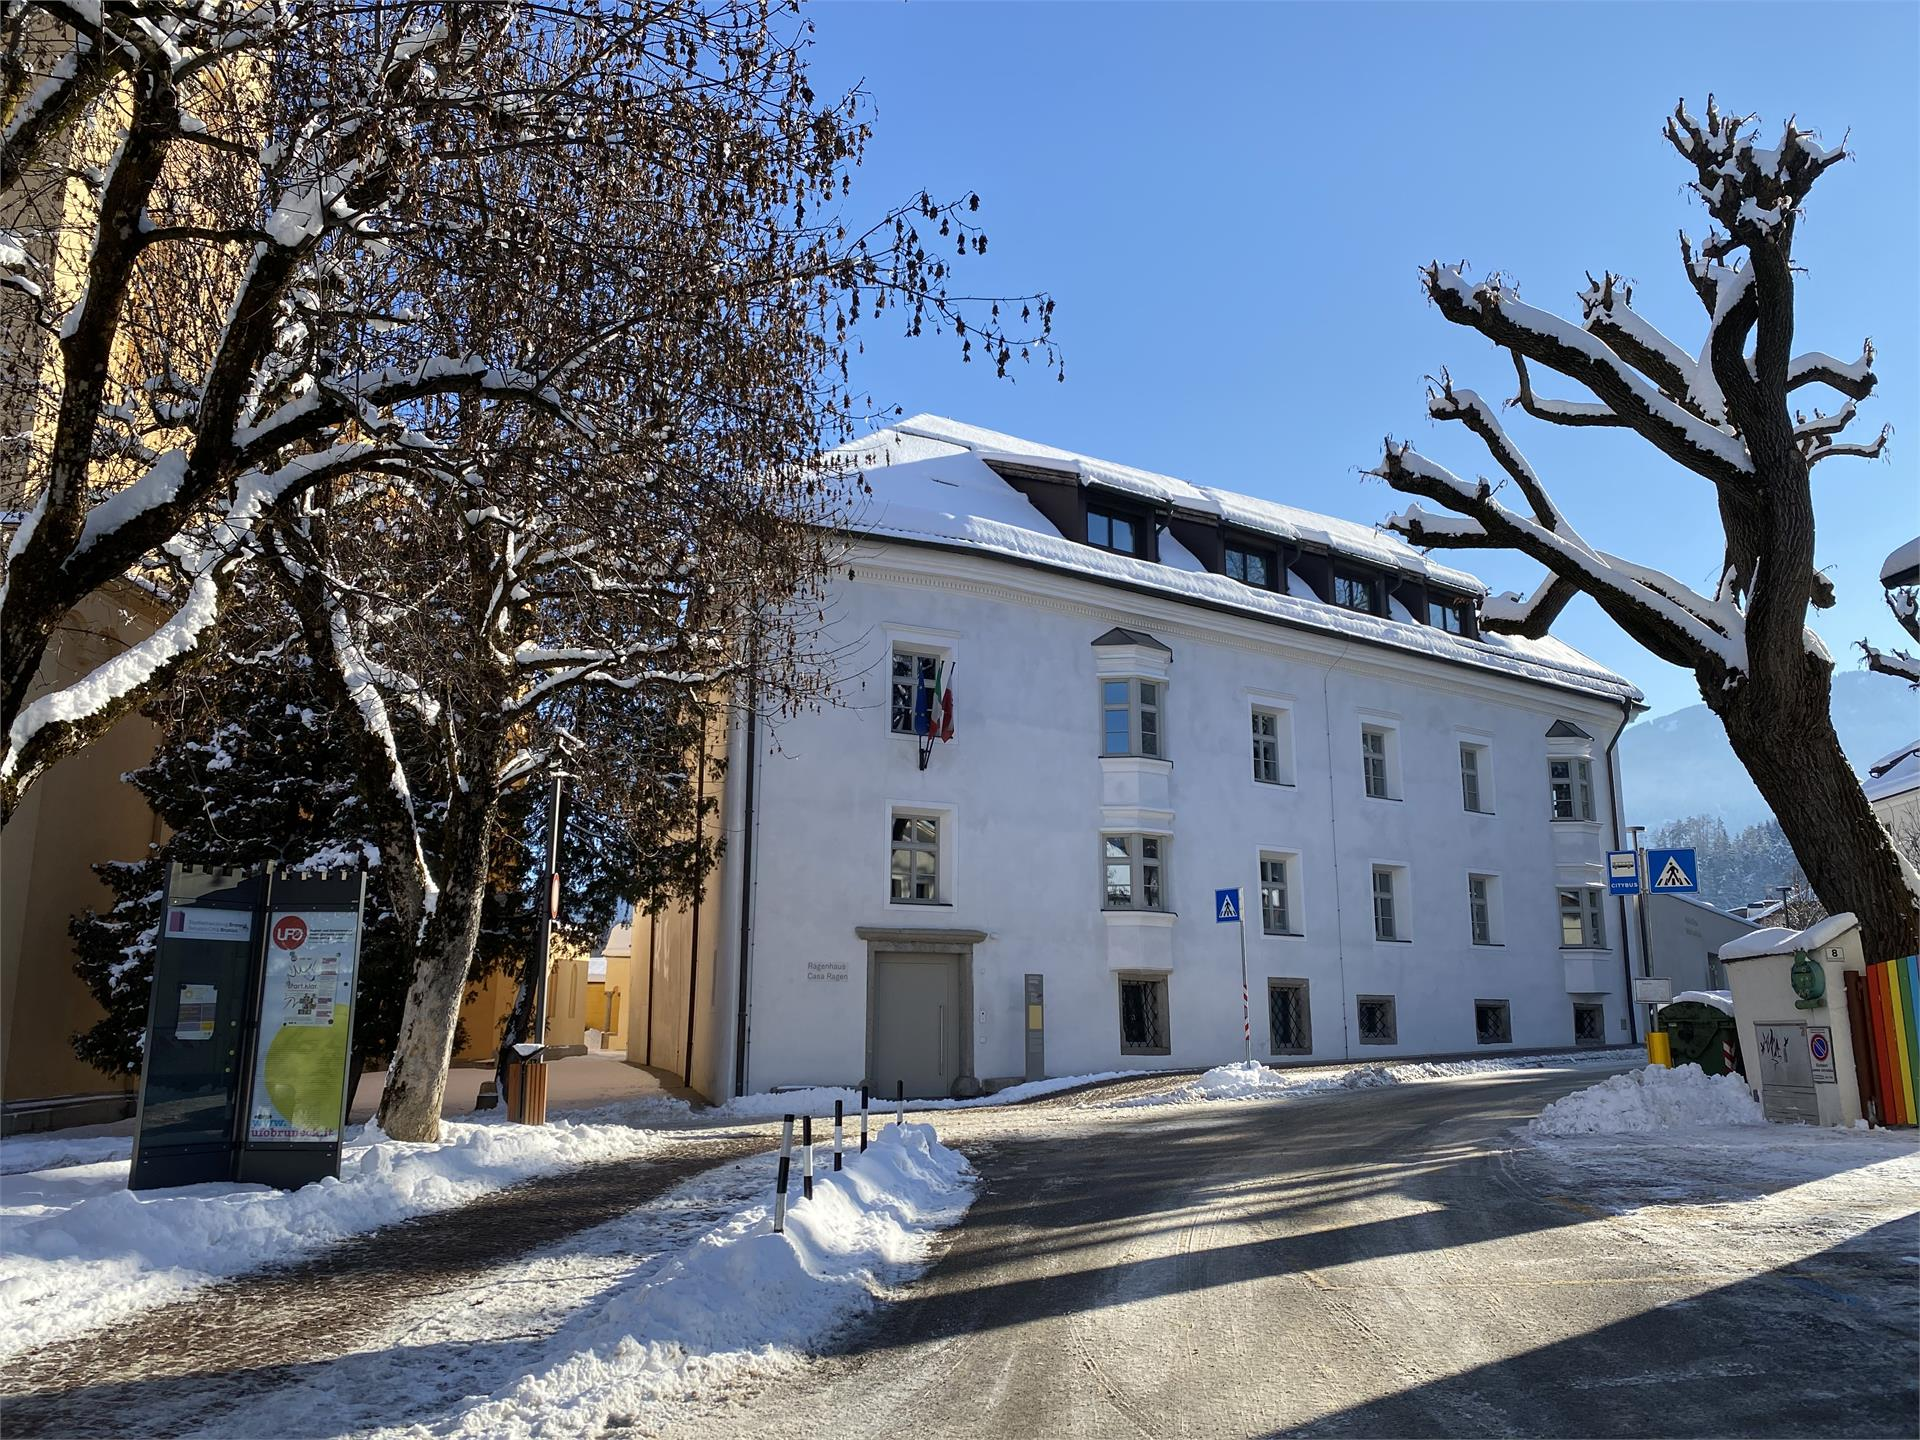 Music and literature at the Ragen House in Bruneck